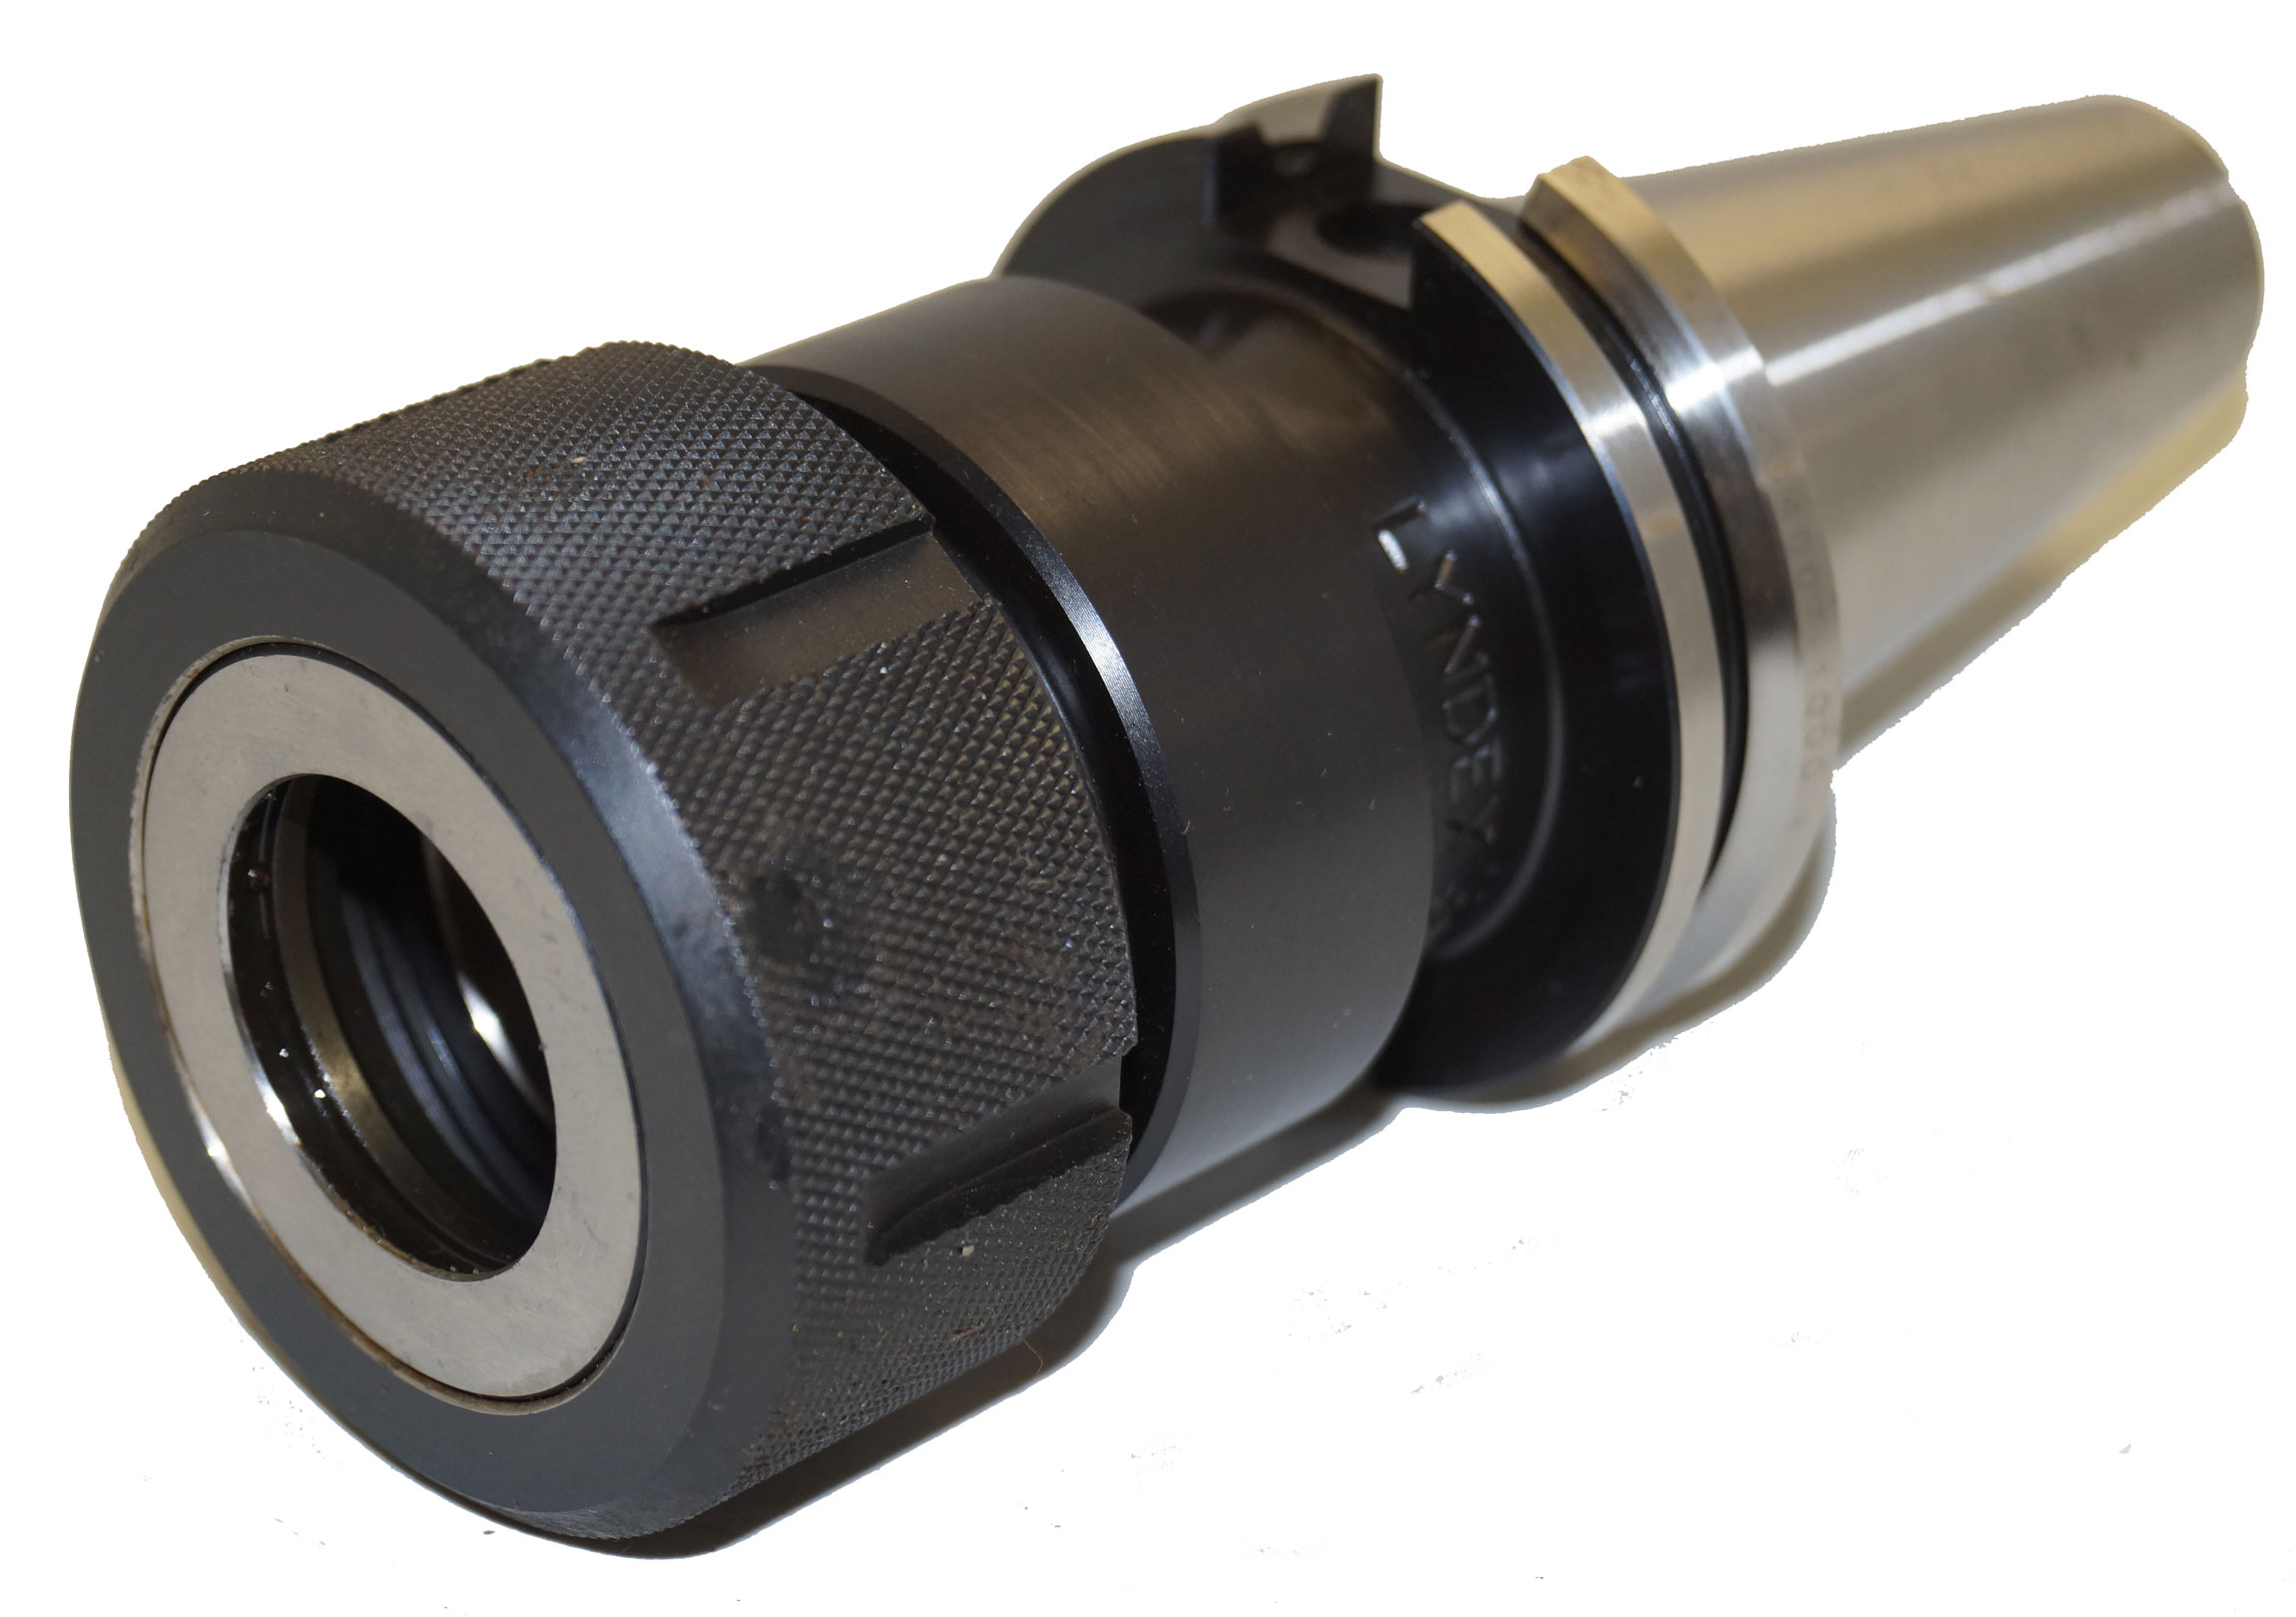 Cat40 TG100 Collet Chuck - Lyndex C4007-1000